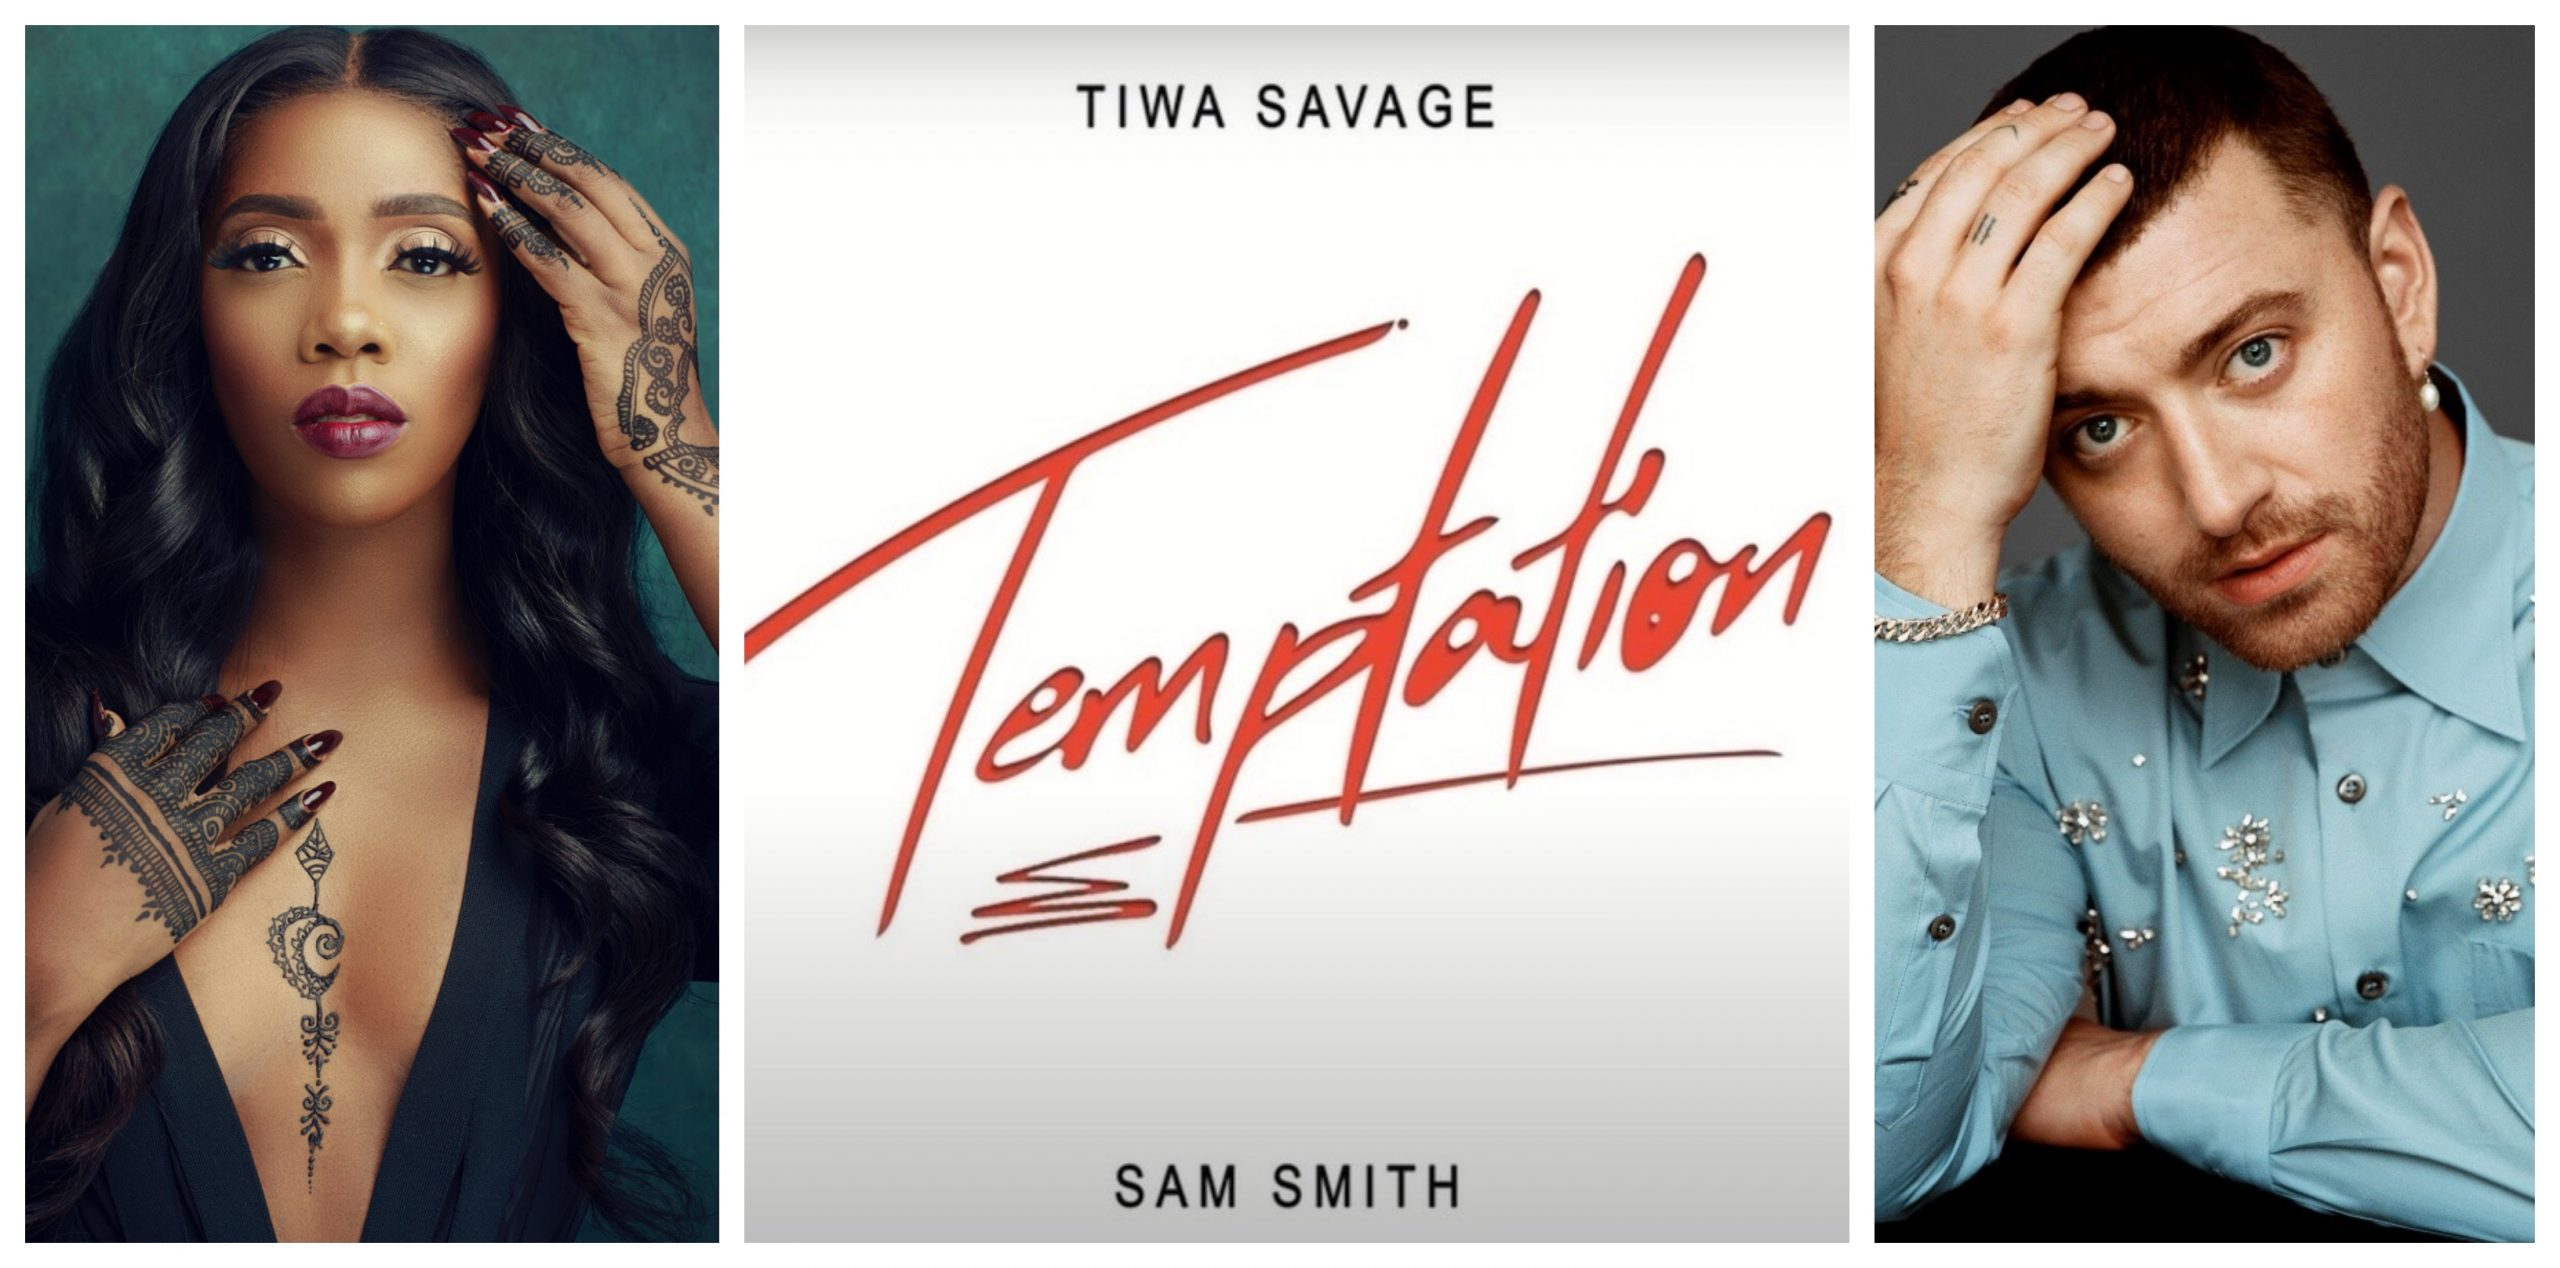 Music: Tiwa Savage X Sam Smith – Temptation